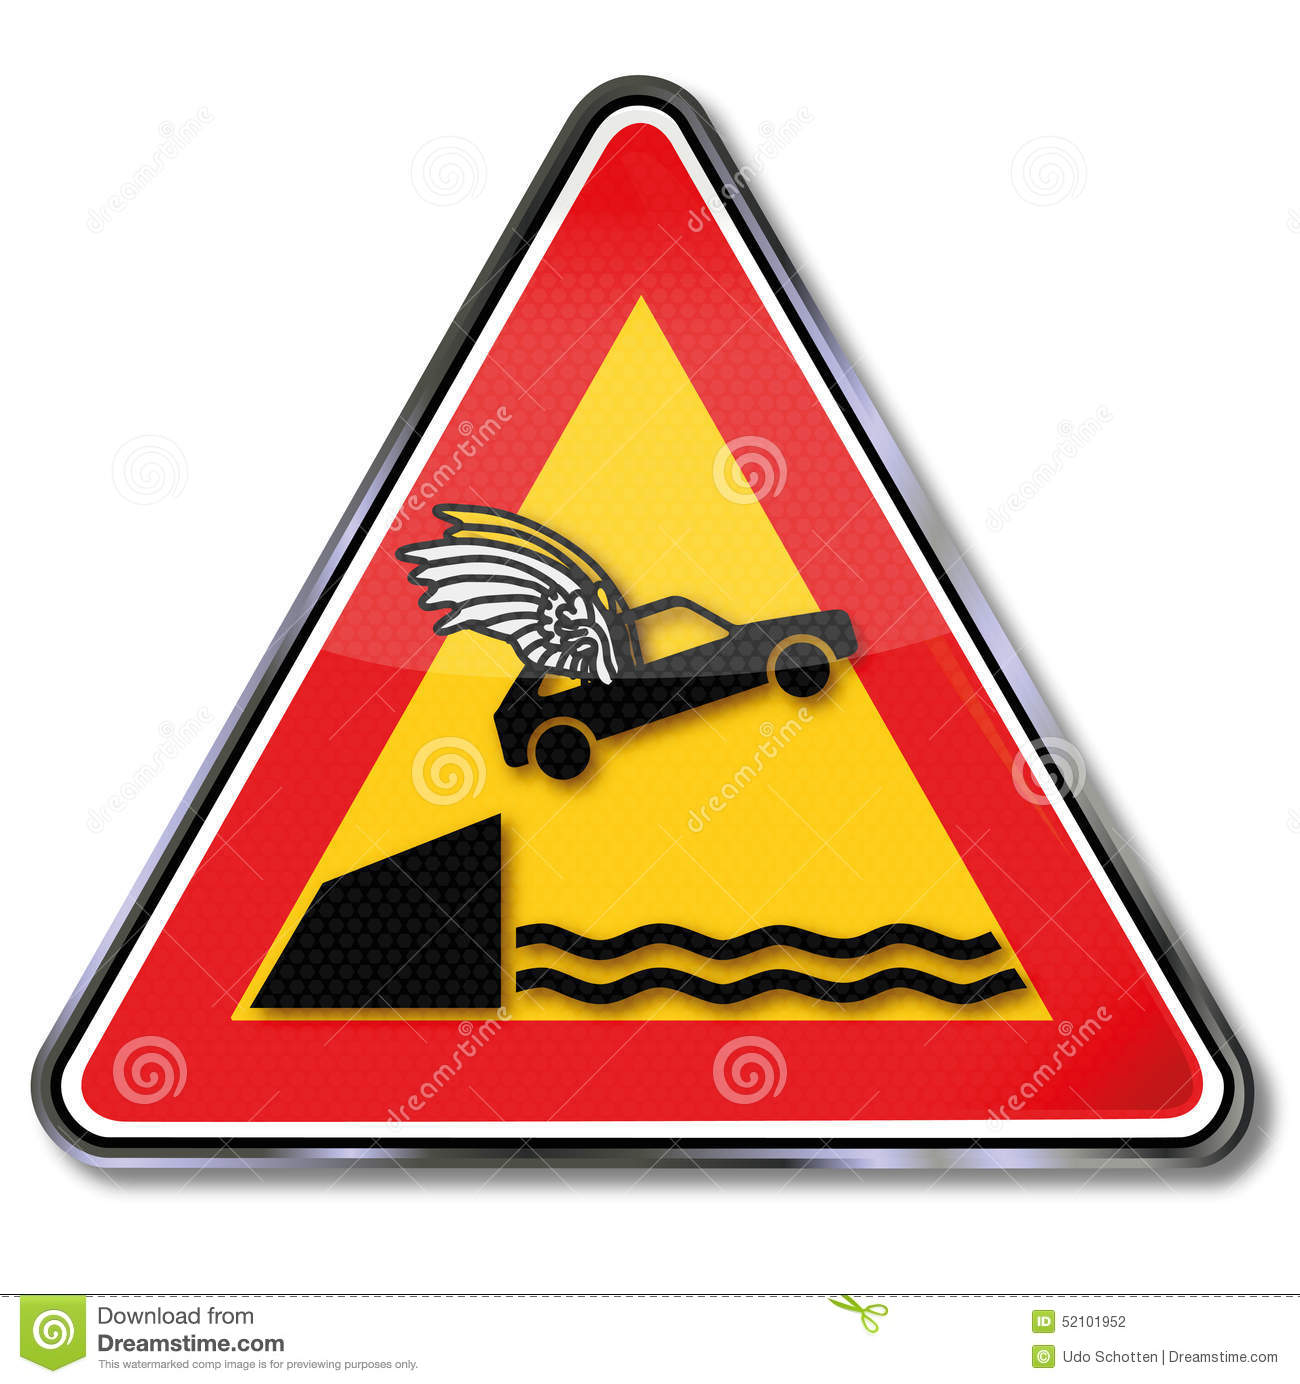 Flying Car Stock Vector. Image Of Sign, Attention